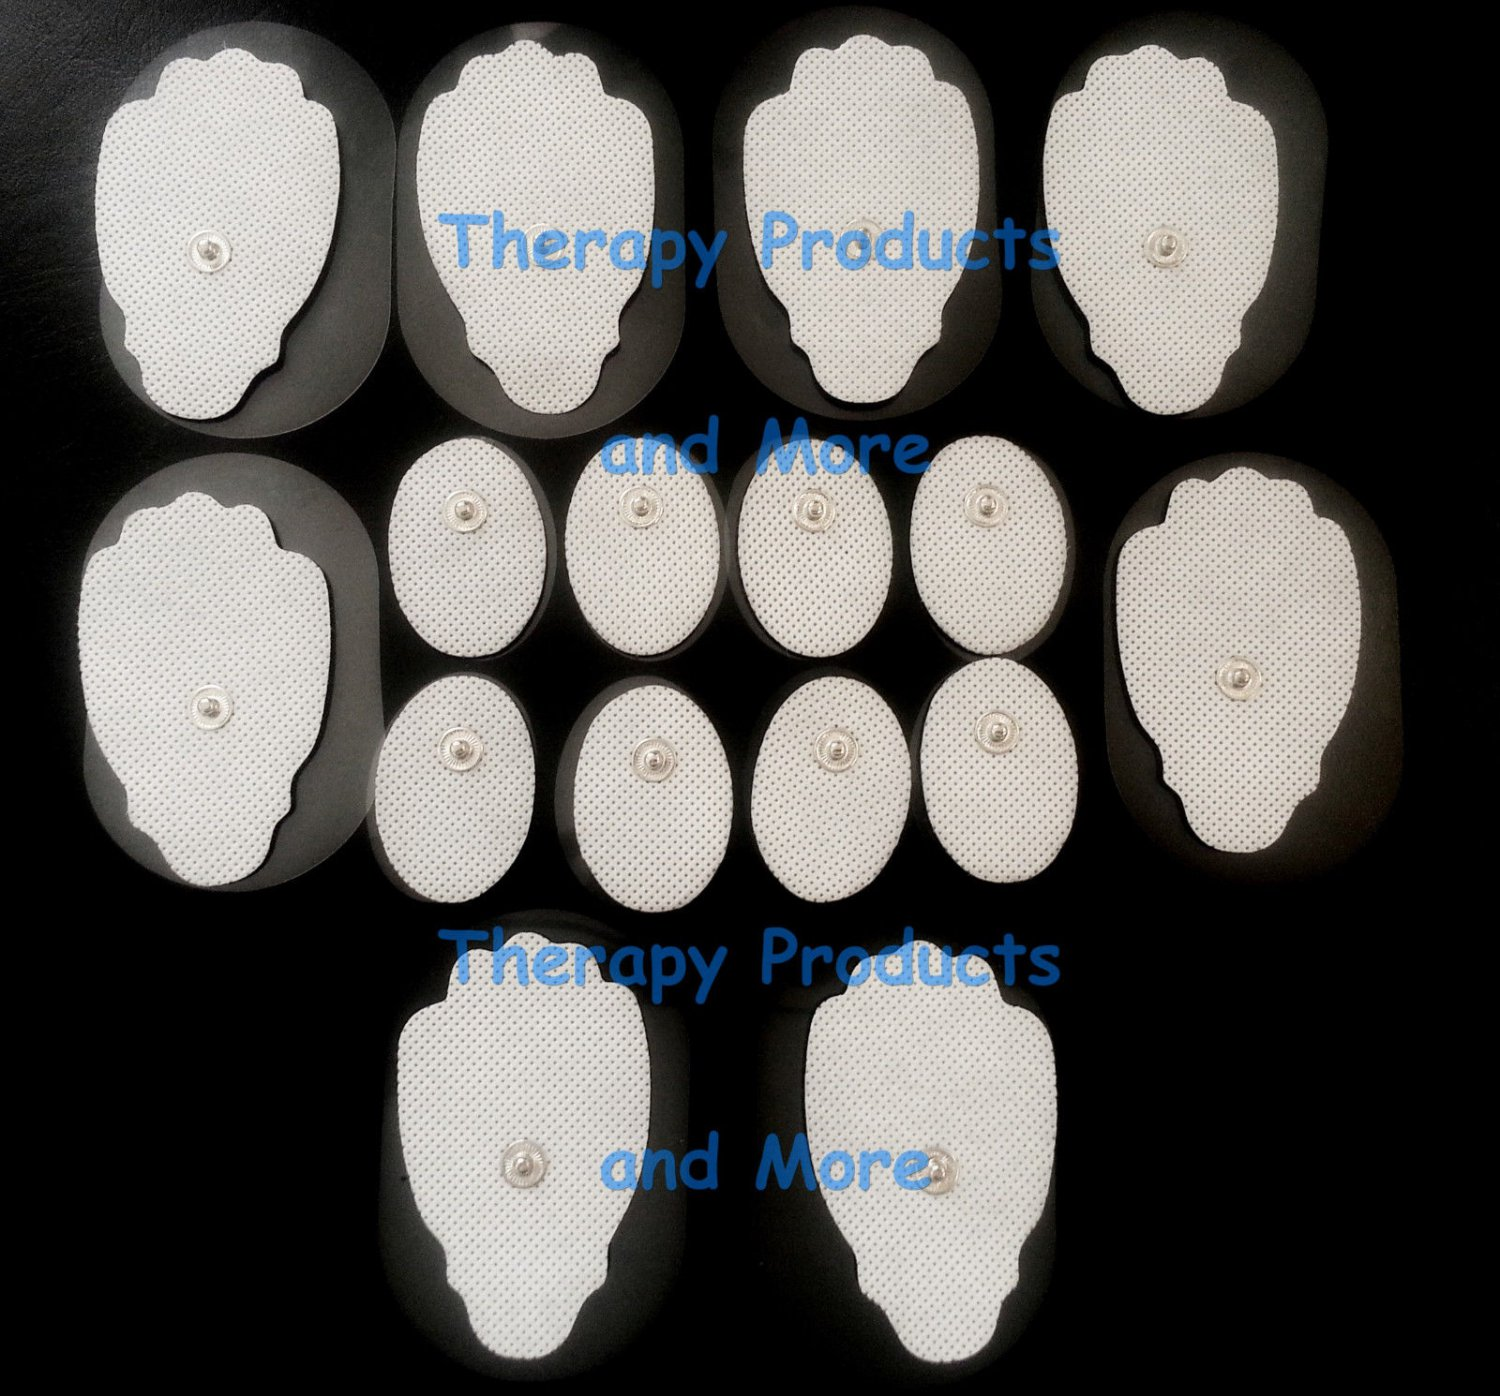 REPLACEMENT ELECTRODE PADS COMBO (8 LG, 8 SM OVAL) FOR HEALTH HERALD MASSAGERS